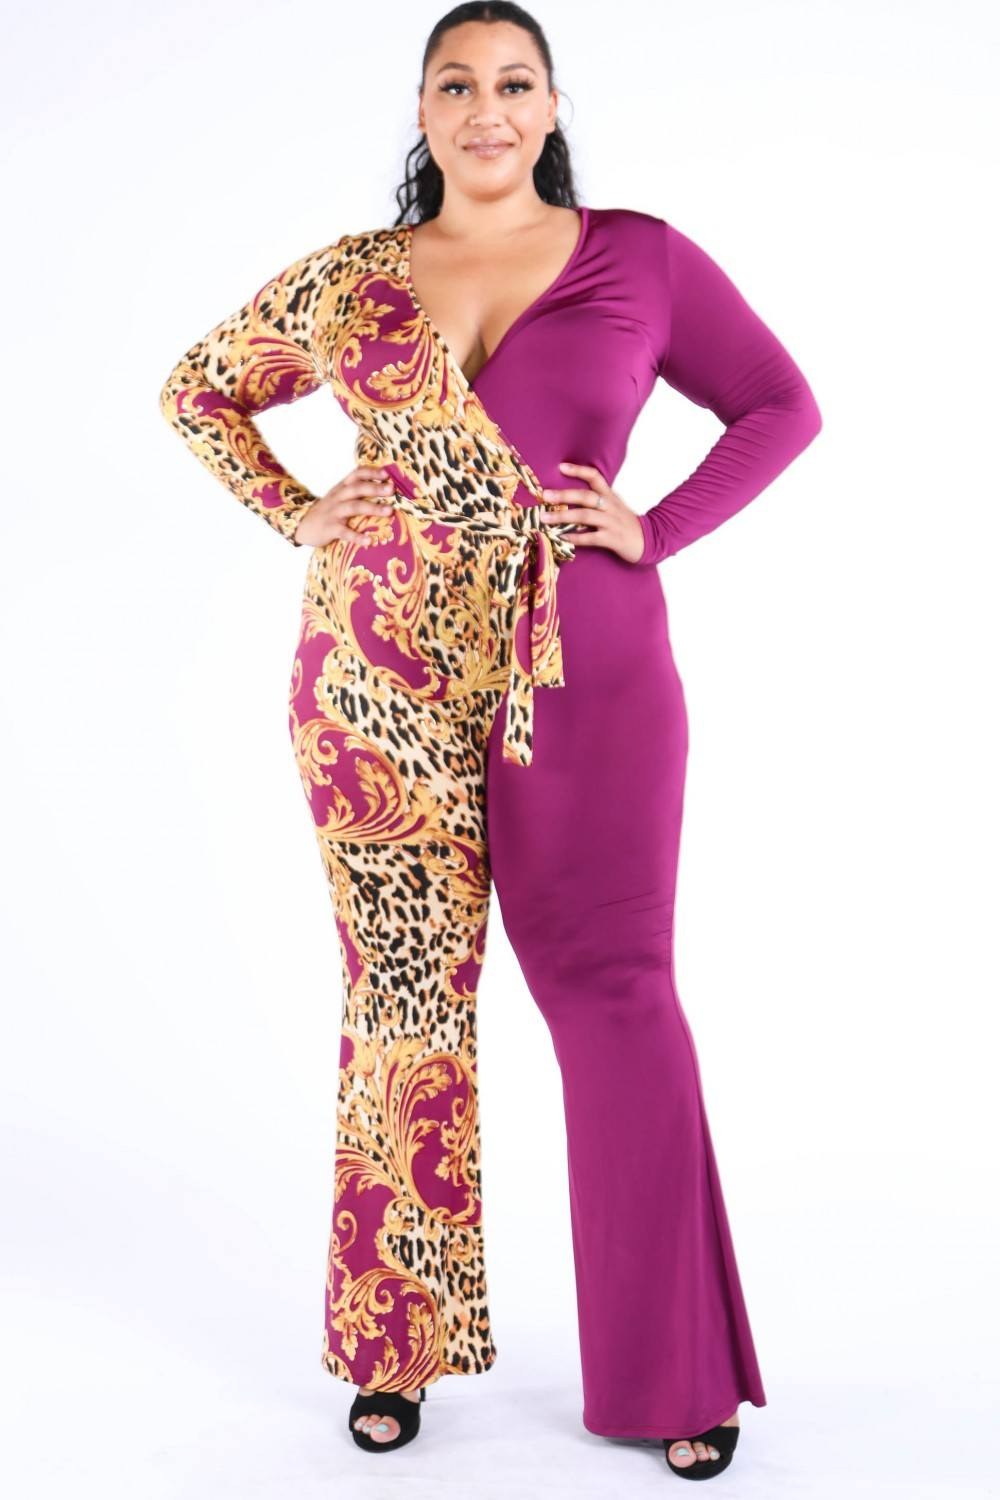 Leopard Paisley Printed Color Blocked Jumpsuit - Sensual Fashion Boutique